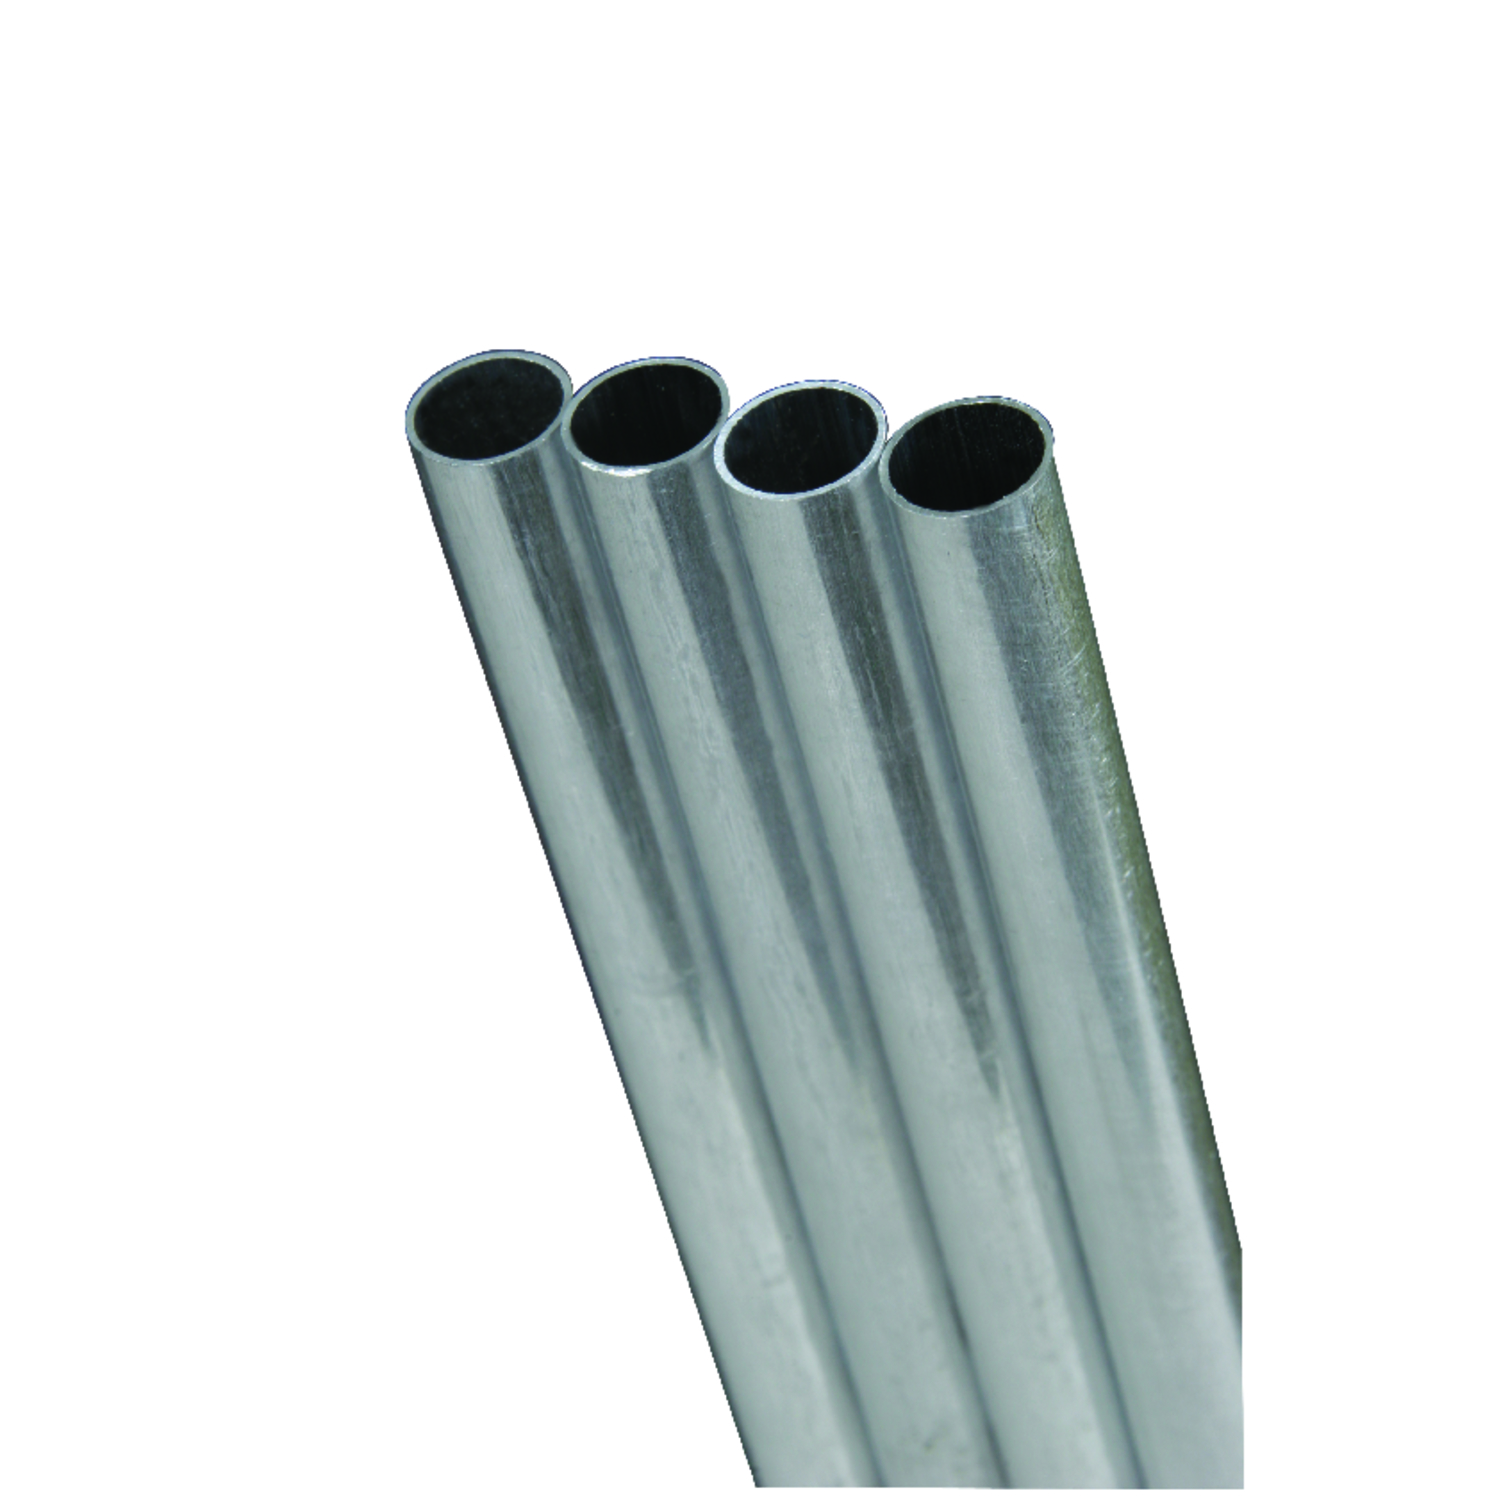 K&S Round Tube 3/16 in.  x 12 in.  Stainless steel    Carded